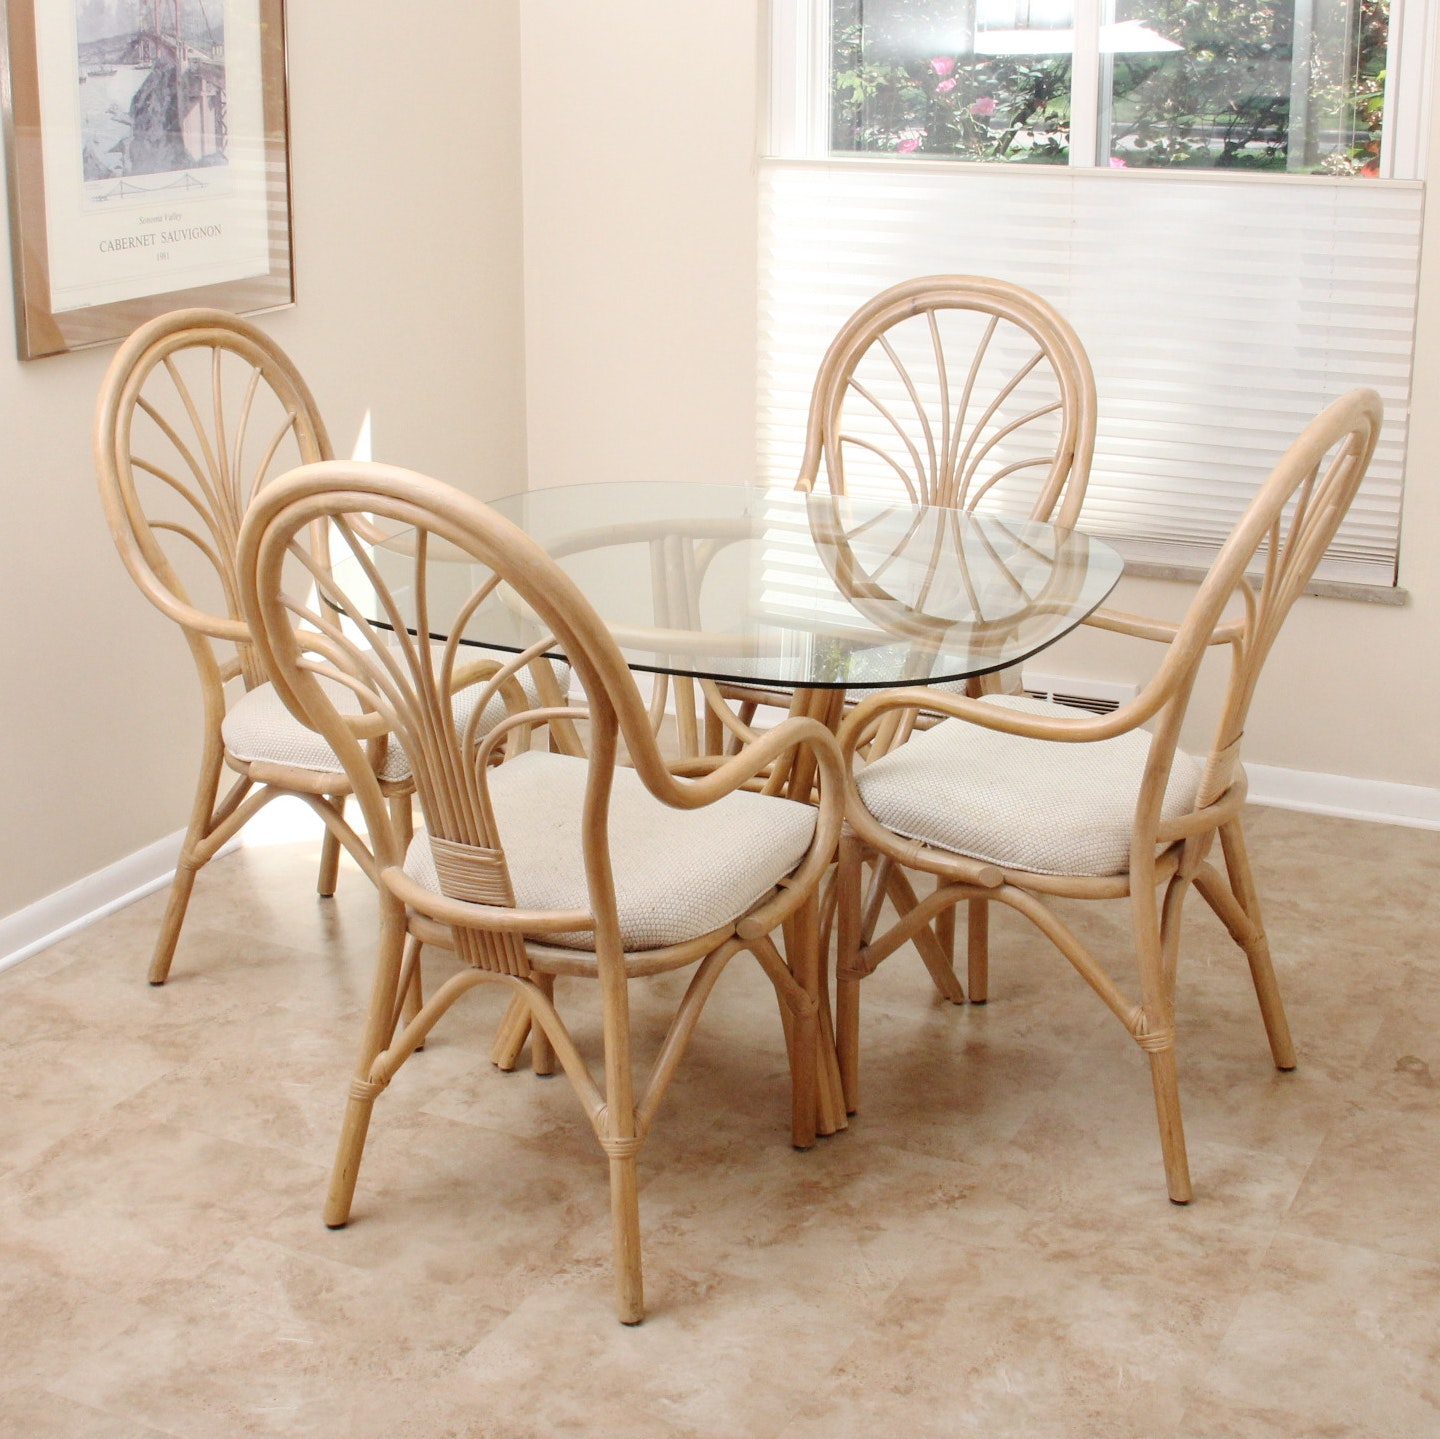 Glass Top Bent Wood Dining Table and Chairs